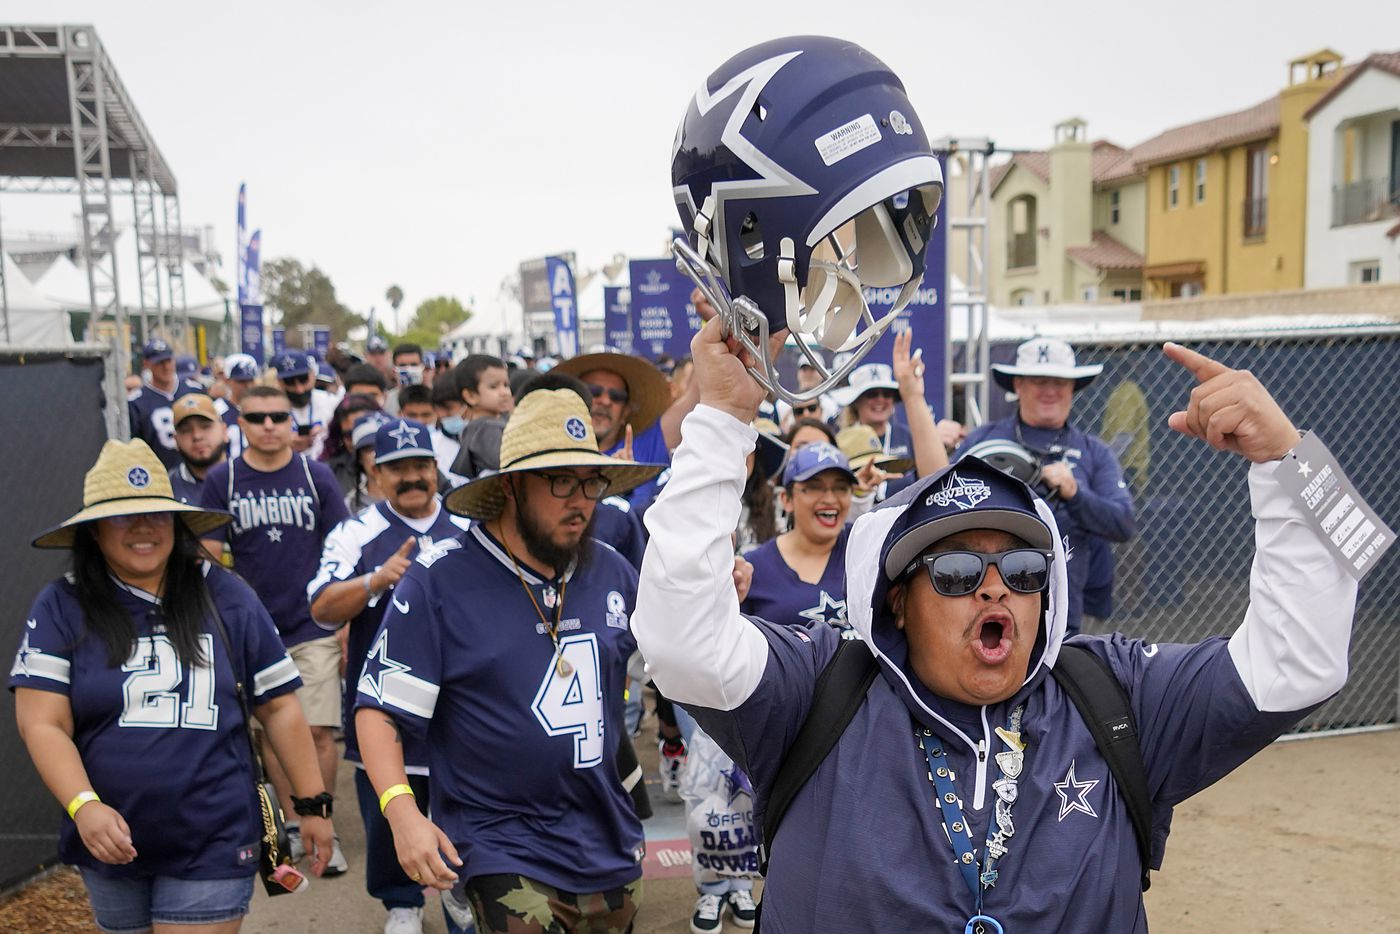 Dallas Cowboys fan Patrick Milan celebrates as the first one through the gates for a practice at training camp on Sunday, July 25, 2021, in Oxnard, Calif.